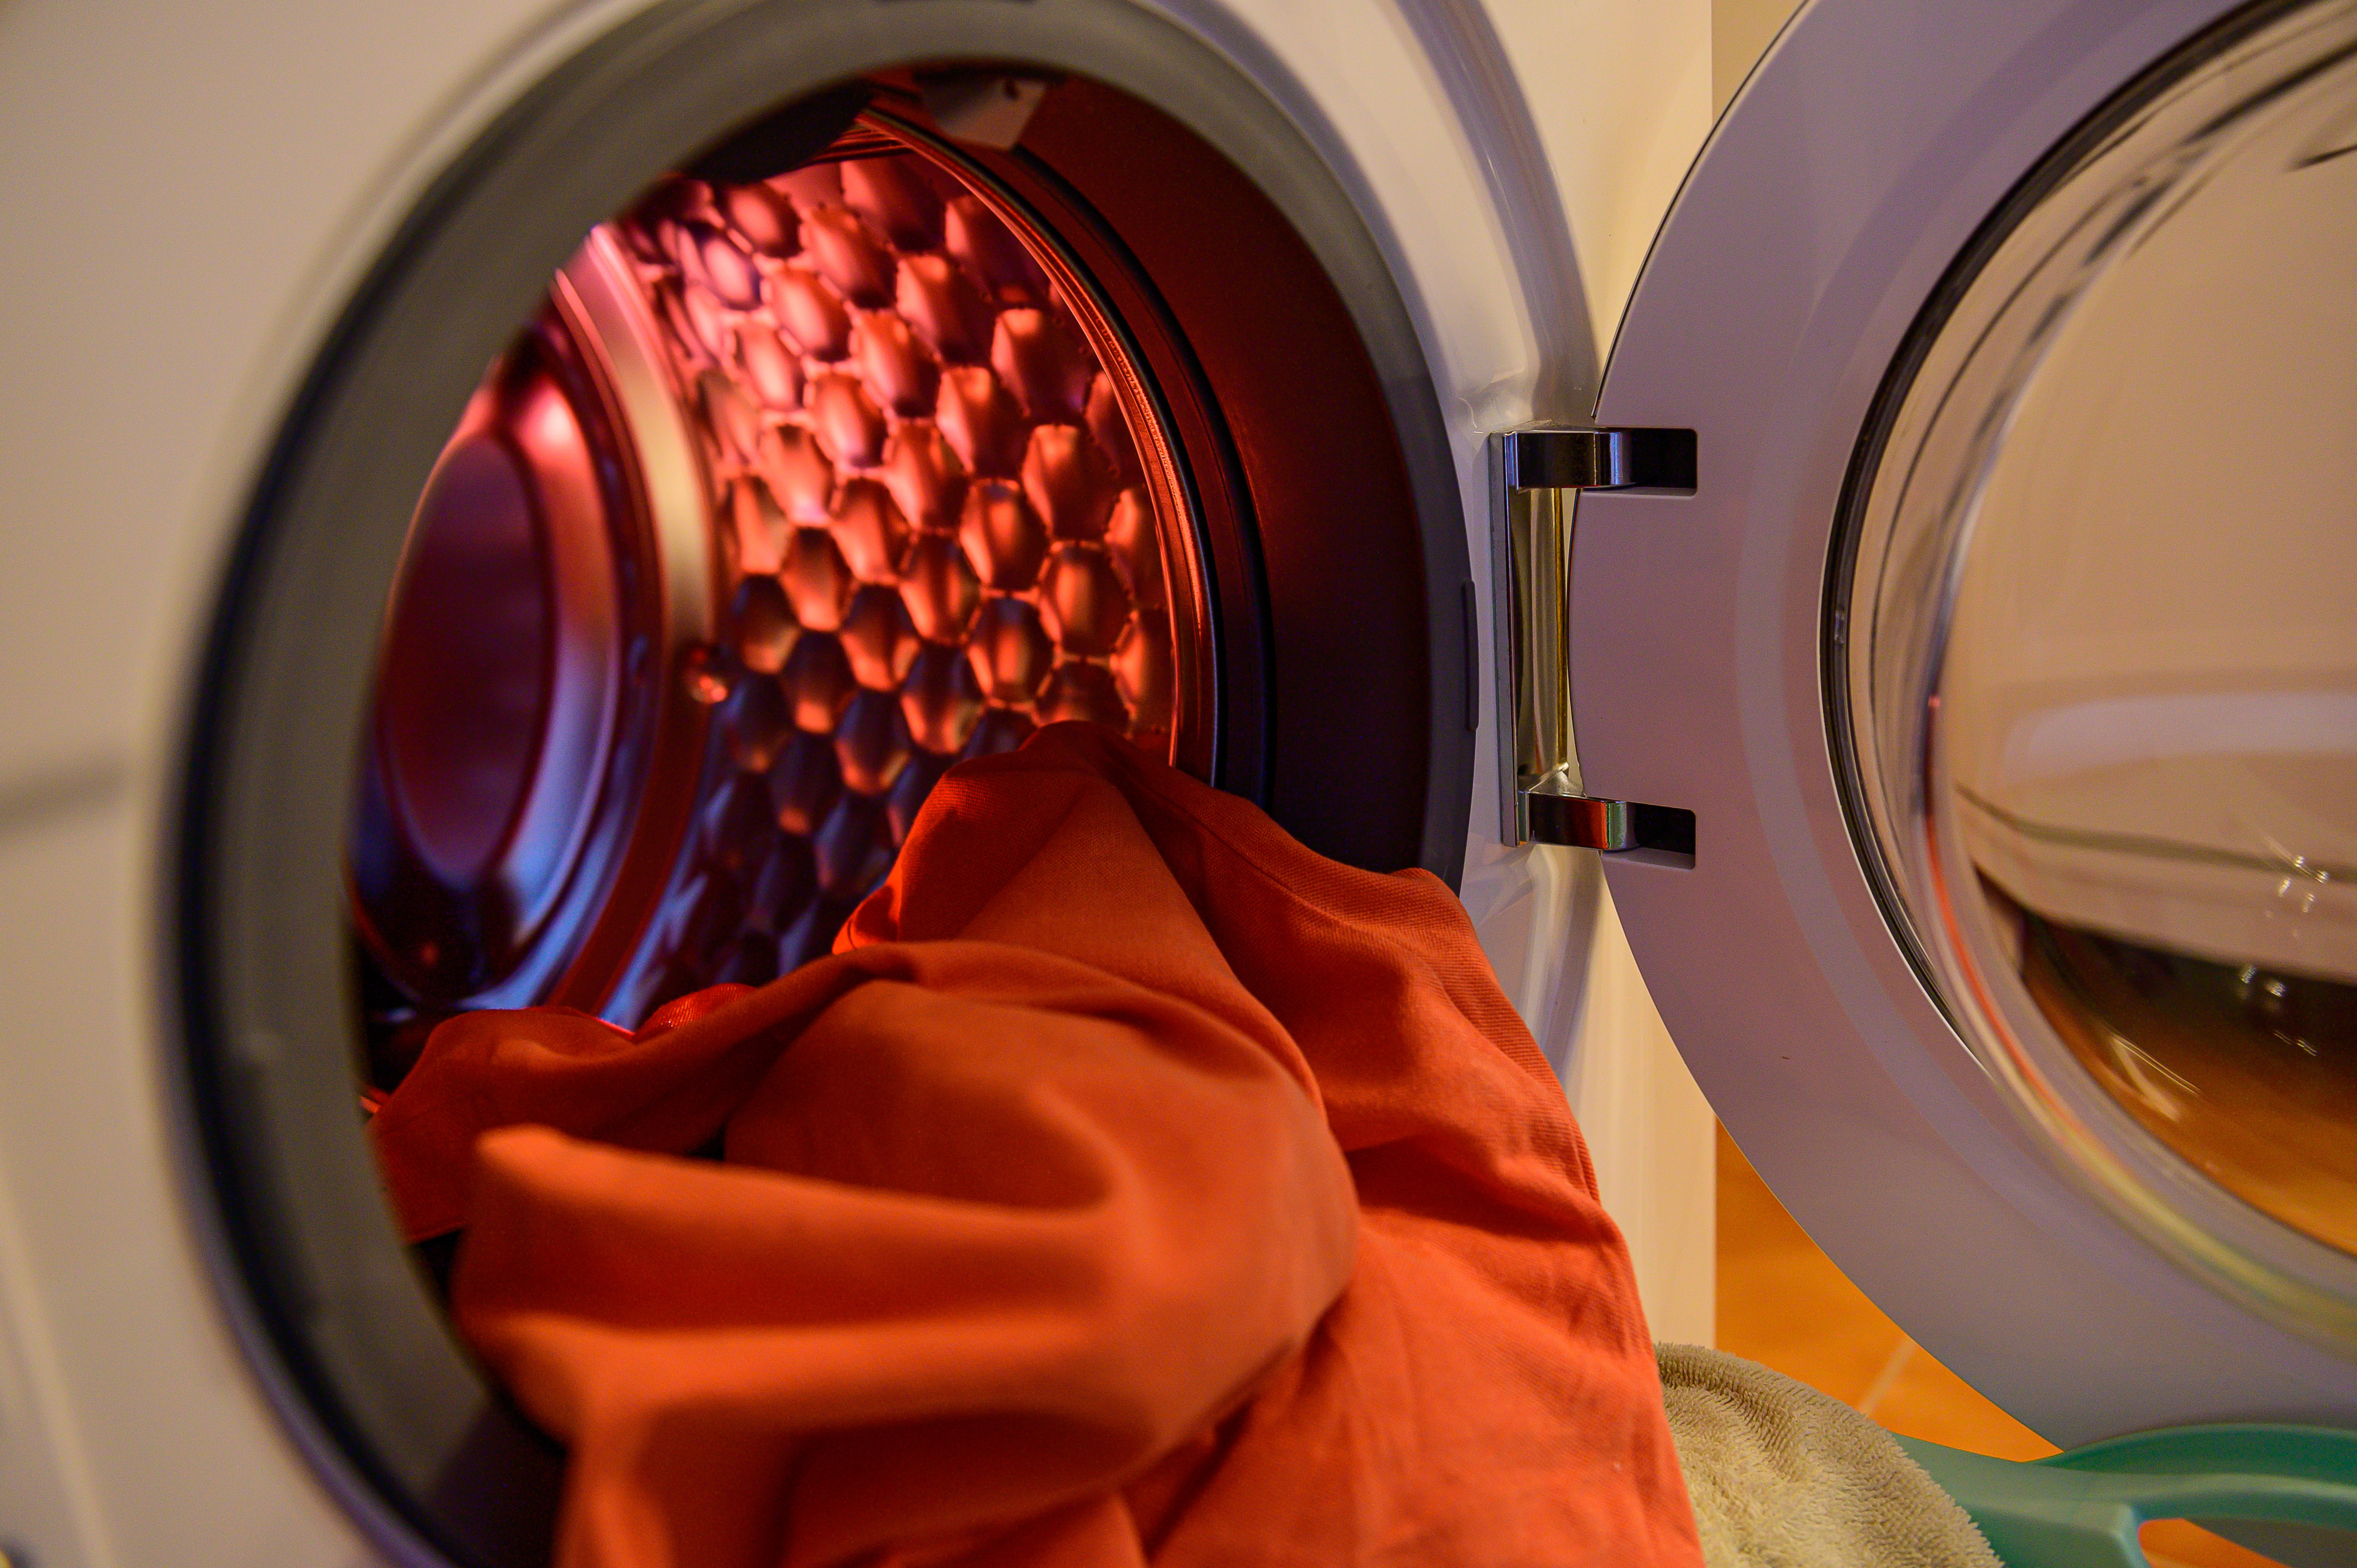 How To Make Your Clothes Smell Good In The Dryer 6 gross things that happen when you don't wash your clothes